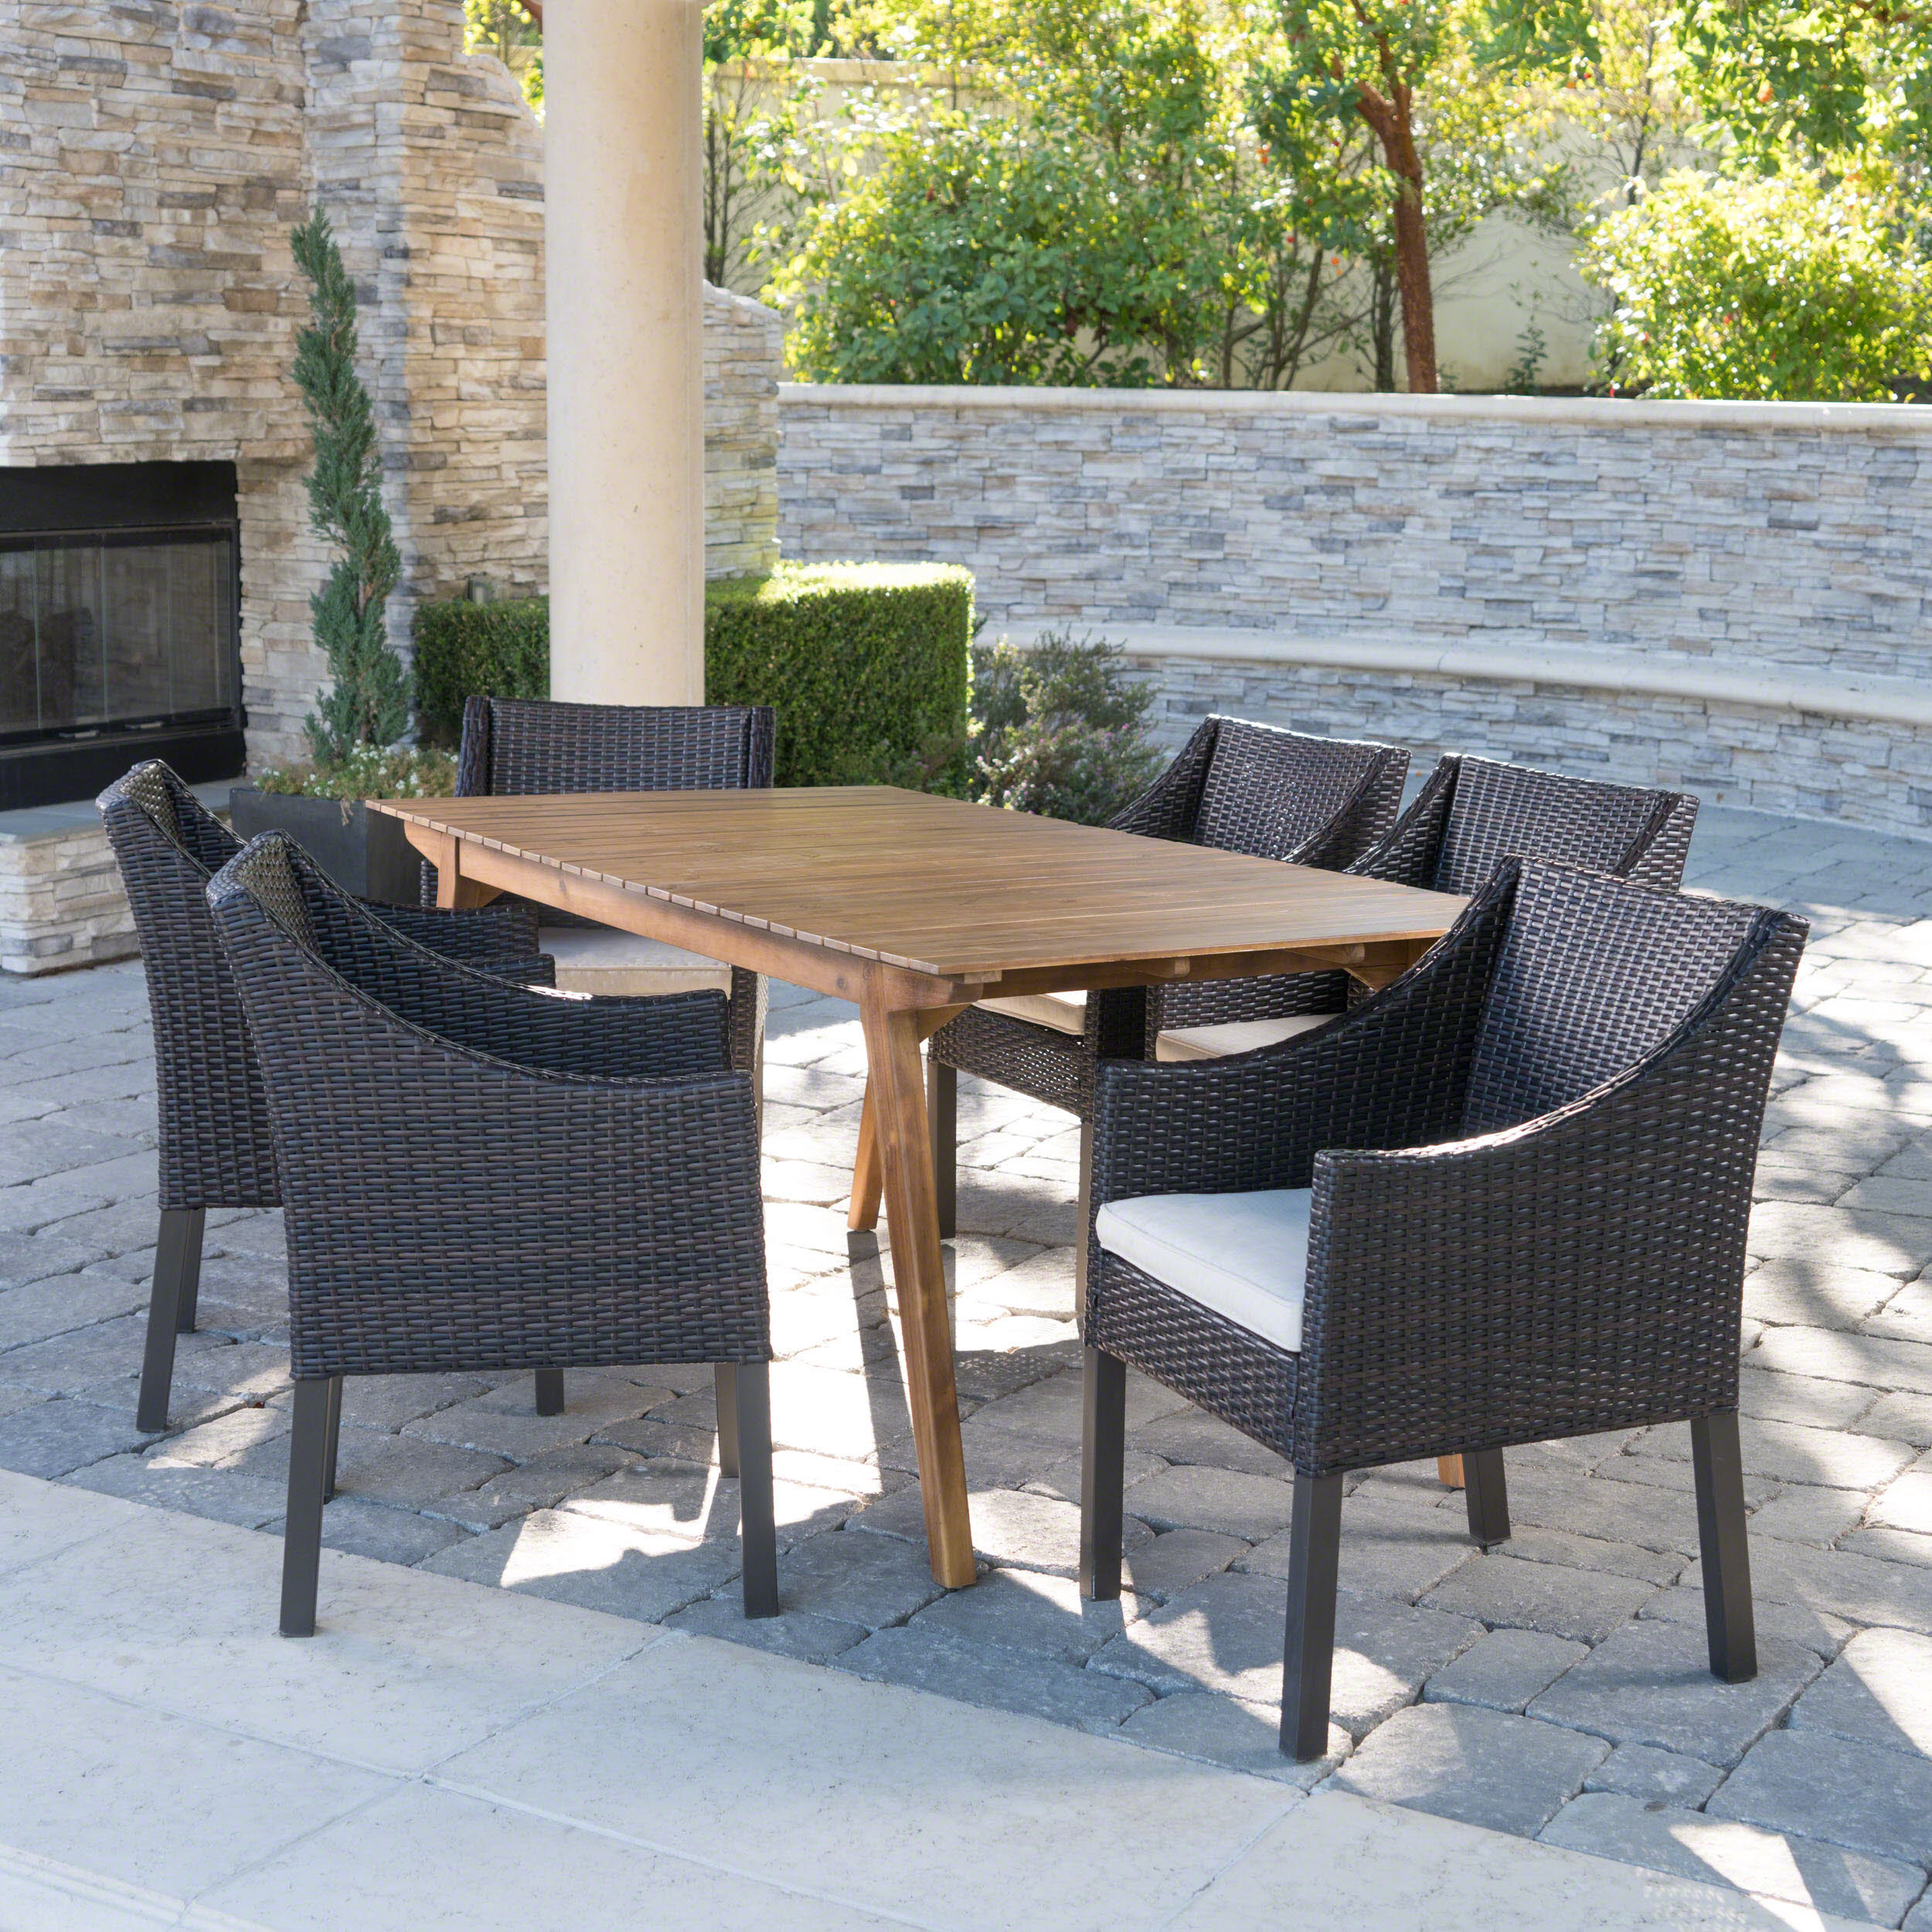 Visalia outdoor 7 piece acacia wood rectangular dining set with wicker chairs and water resistant cushions teak finish